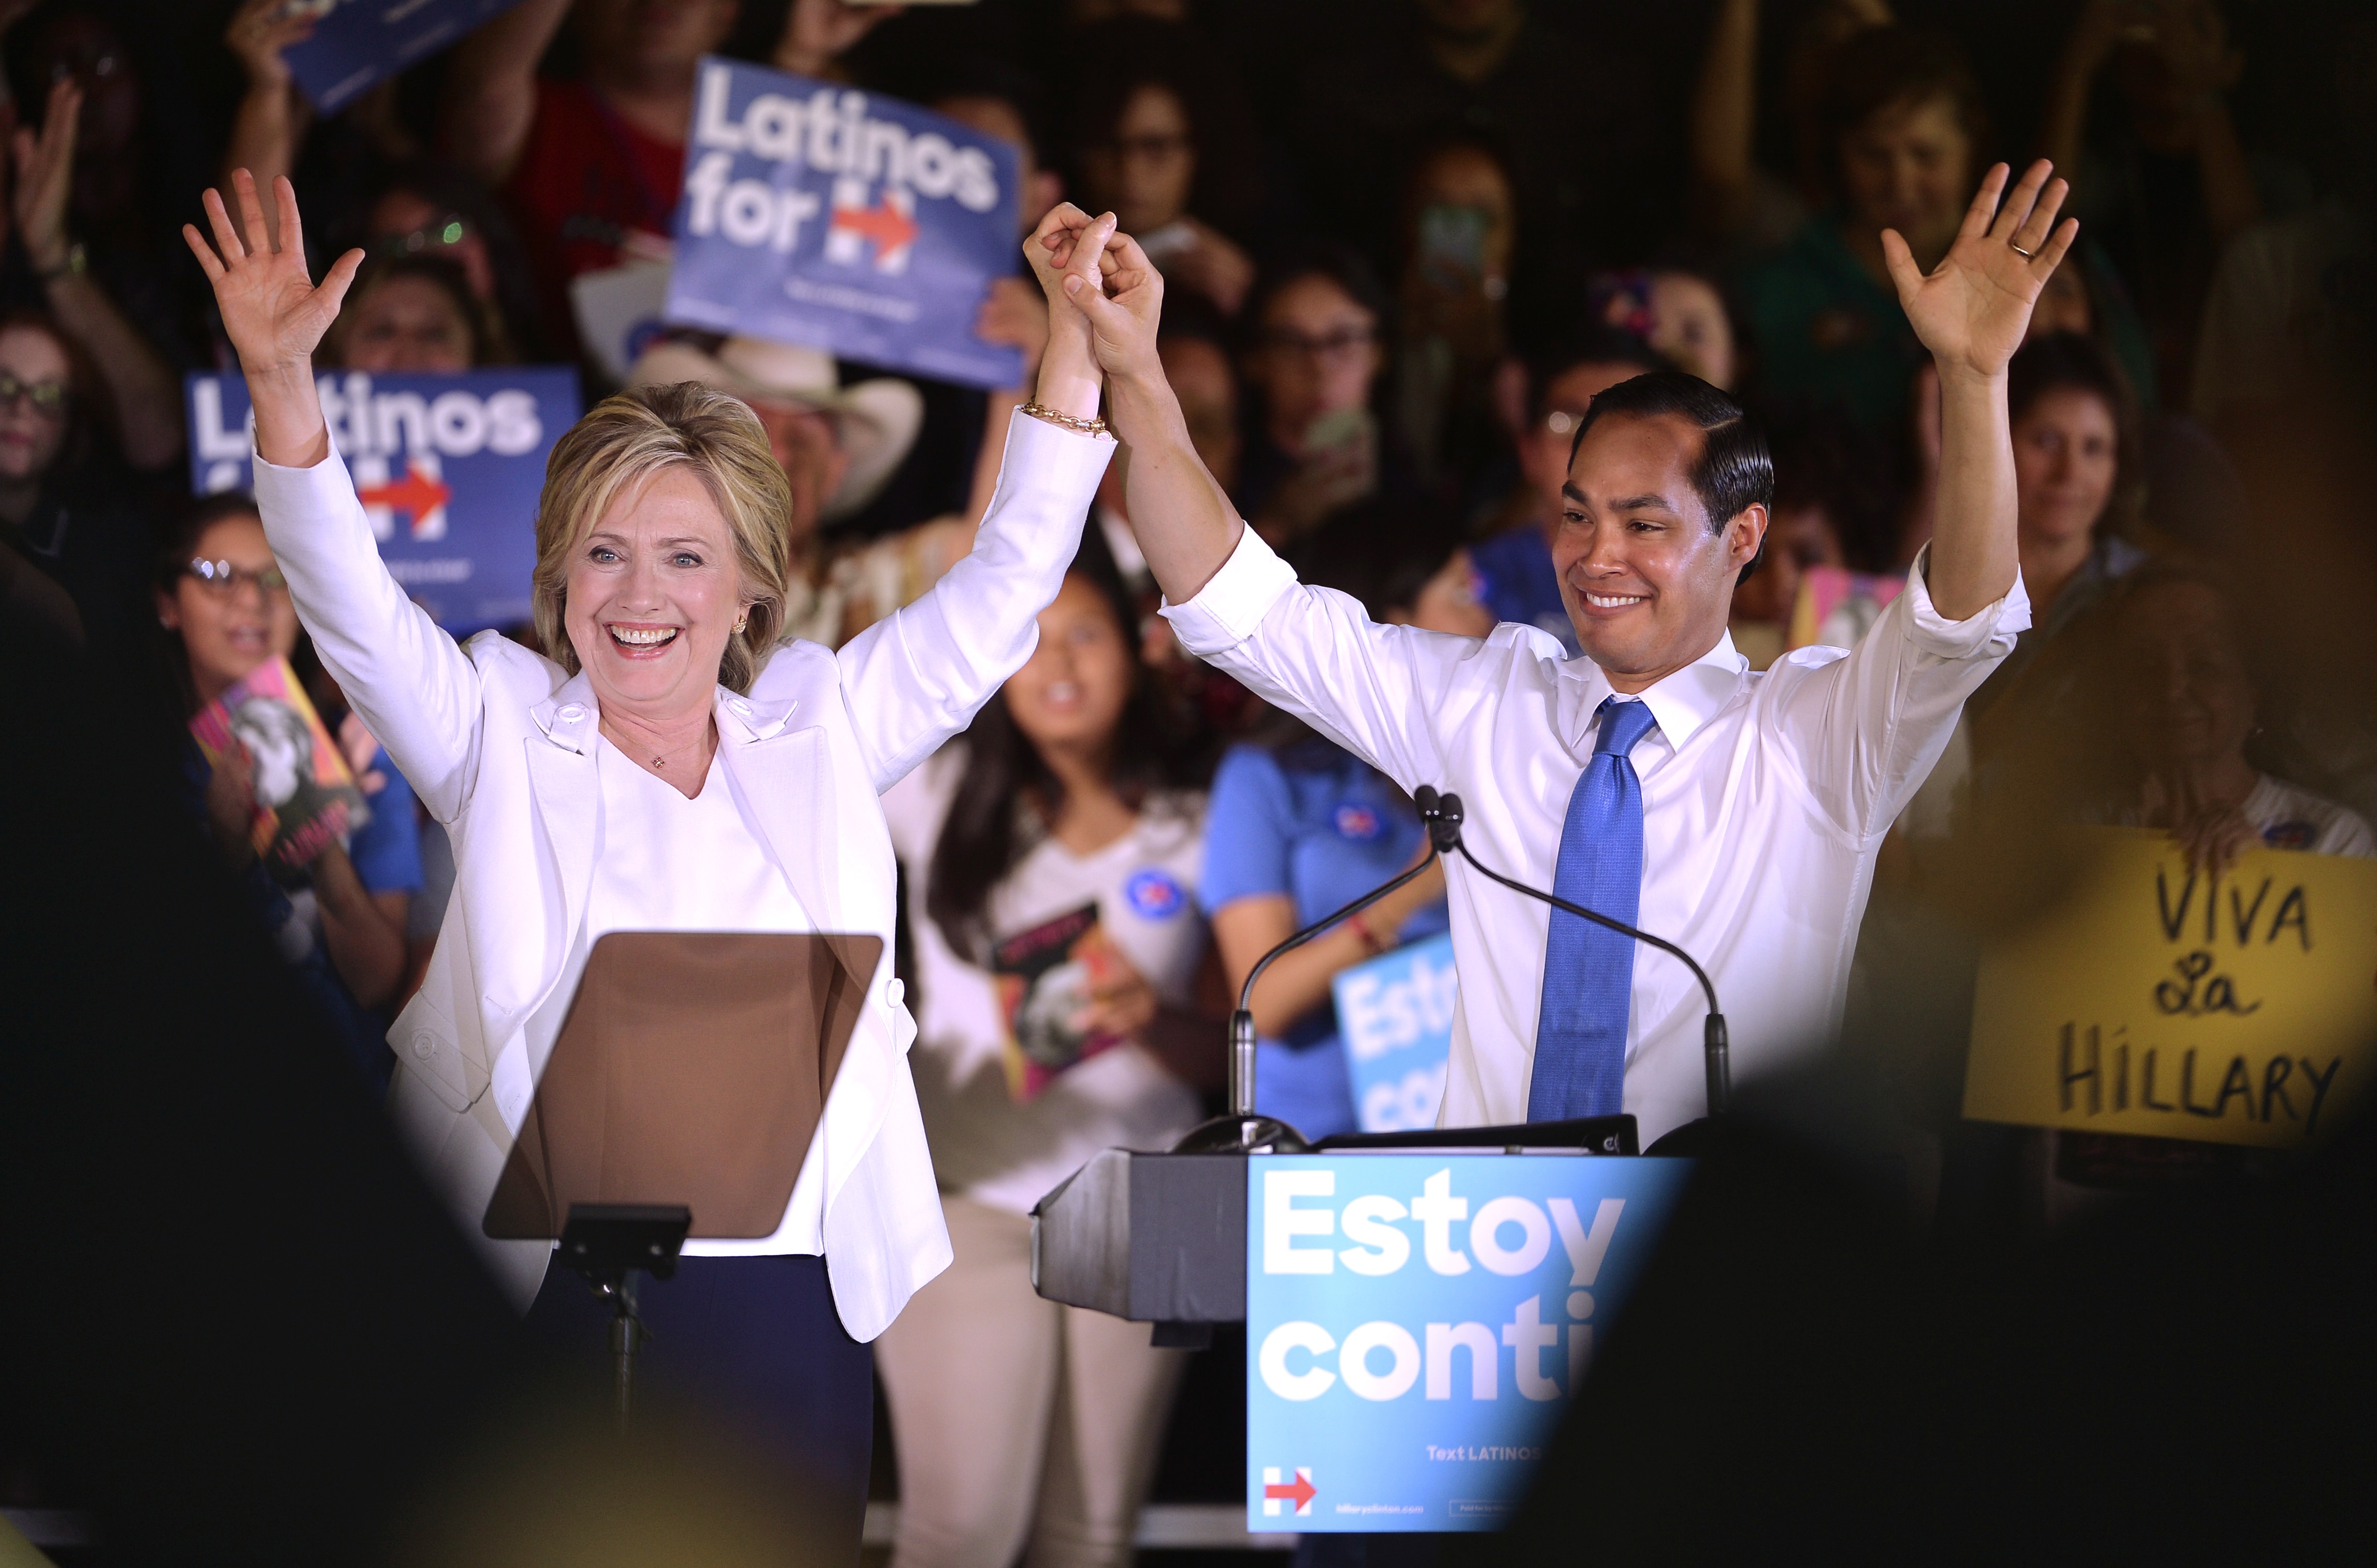 """Democratic U.S. presidential candidate Hillary Clinton waves with U.S. Secretary of Housing and Urban Development Julian Castro at her side during a """"Latinos for Hillary"""" rally in San Antonio, Texas October 15, 2015. Castro endorsed Clinton's campaign for president. REUTERS/Darren Abate - RTS4NH9"""